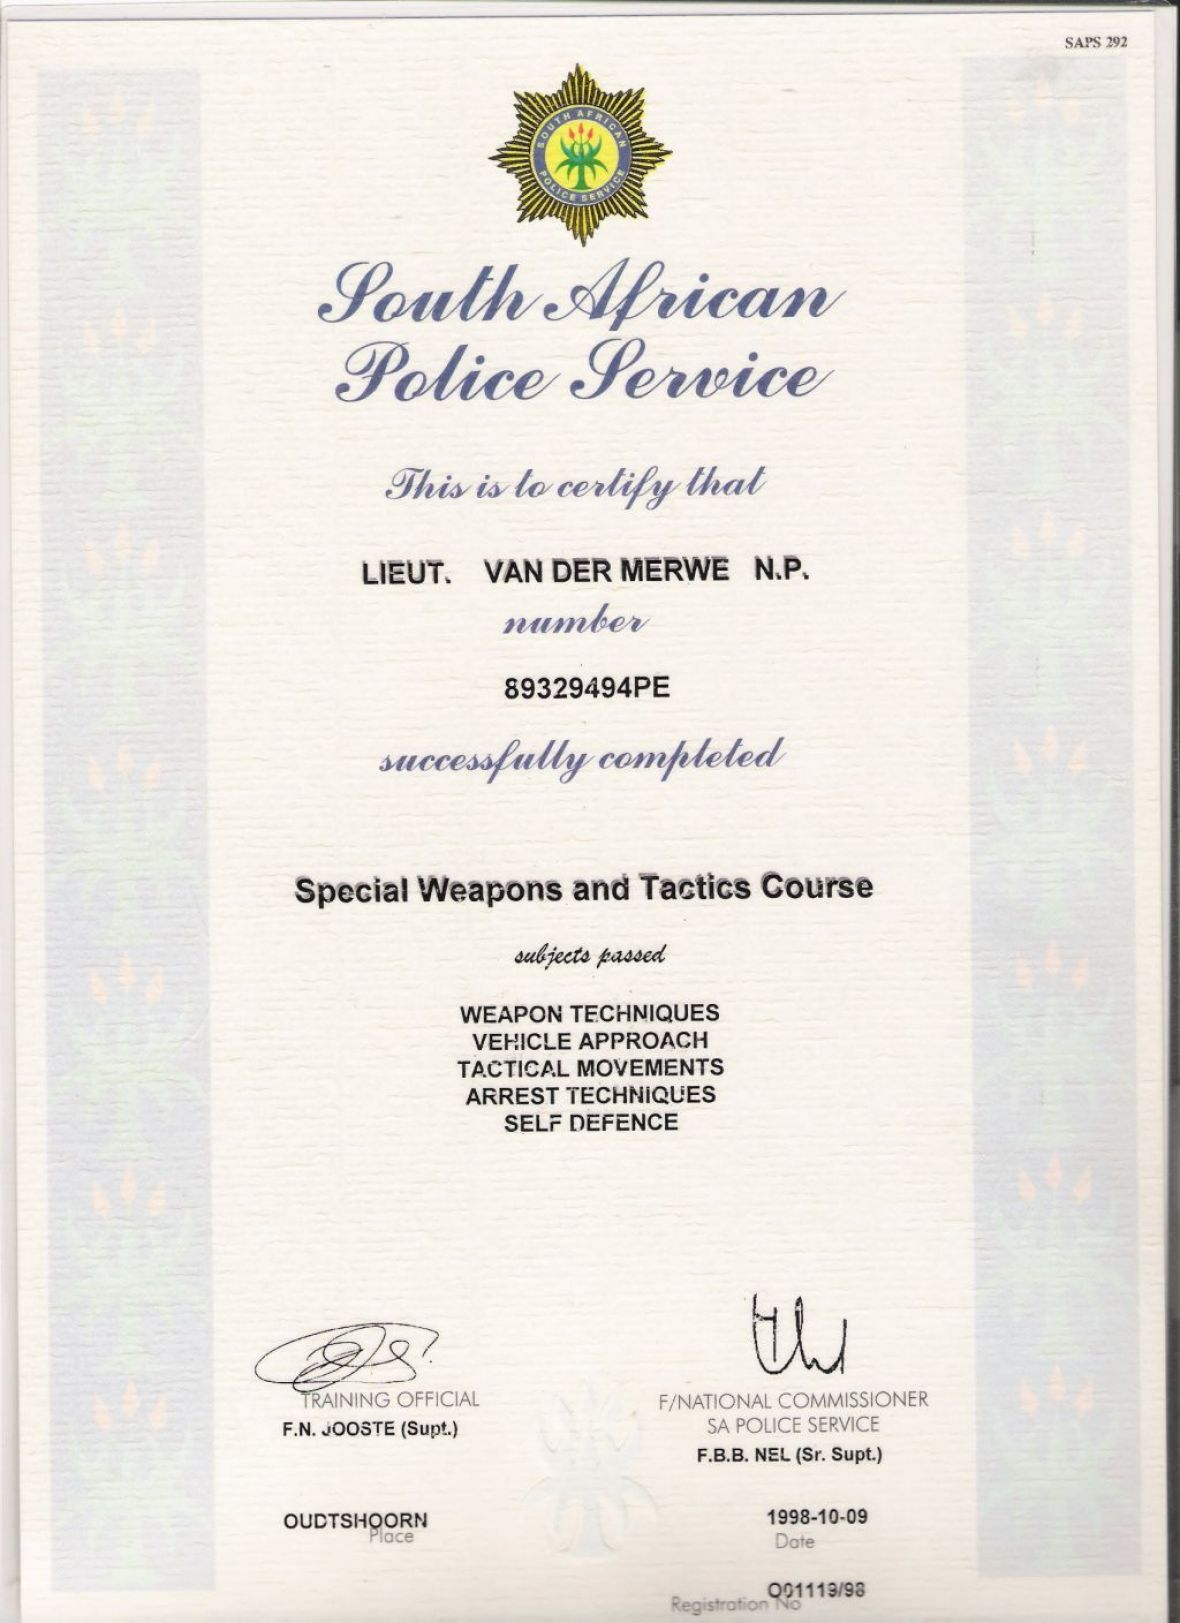 SAPS Special weapons and Tactics (SWAT) Training